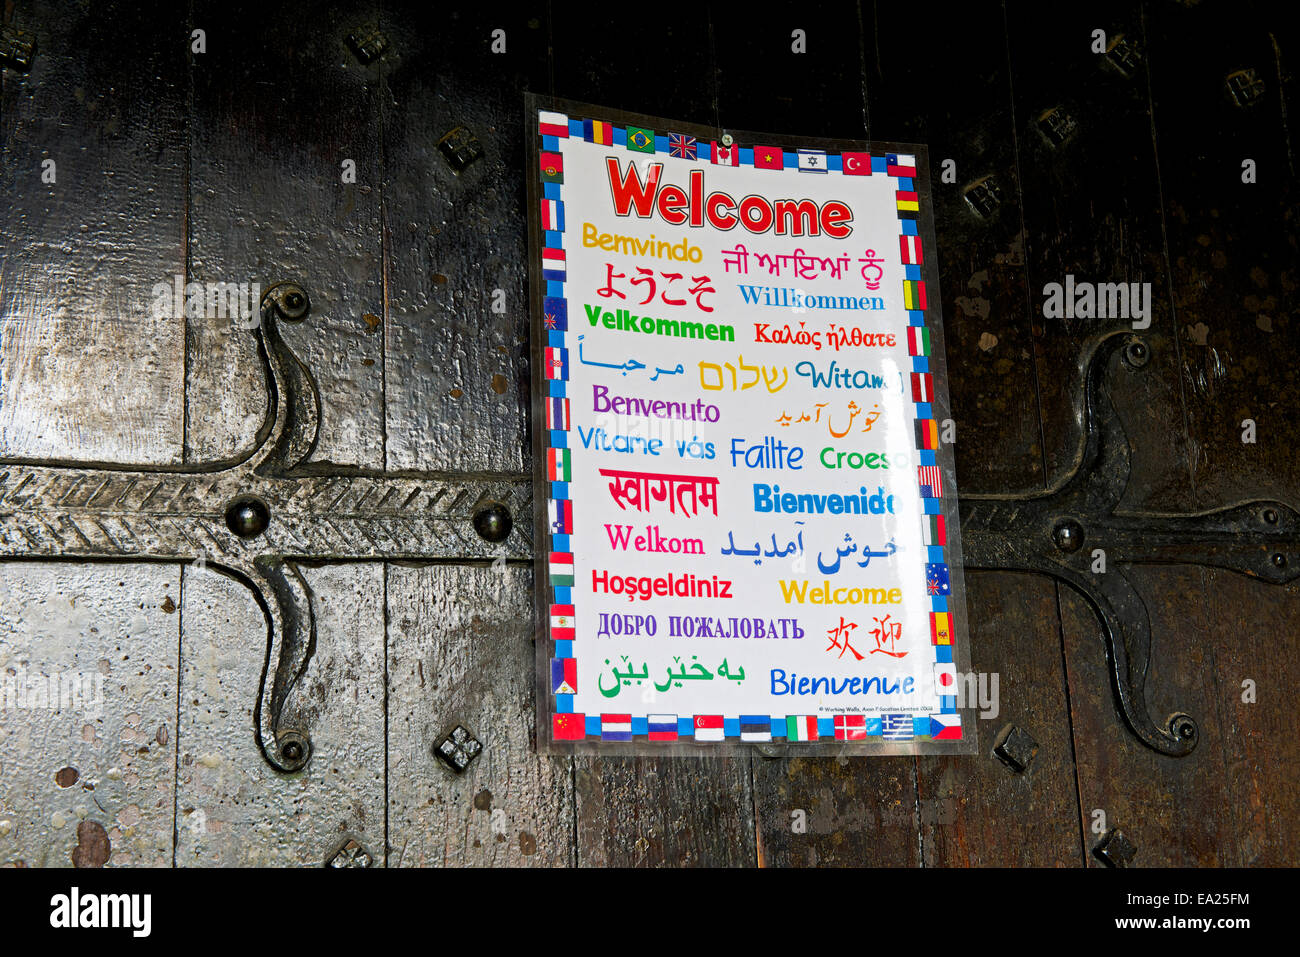 welcome-sign-in-many-languages-on-church-door-EA25FM.jpg